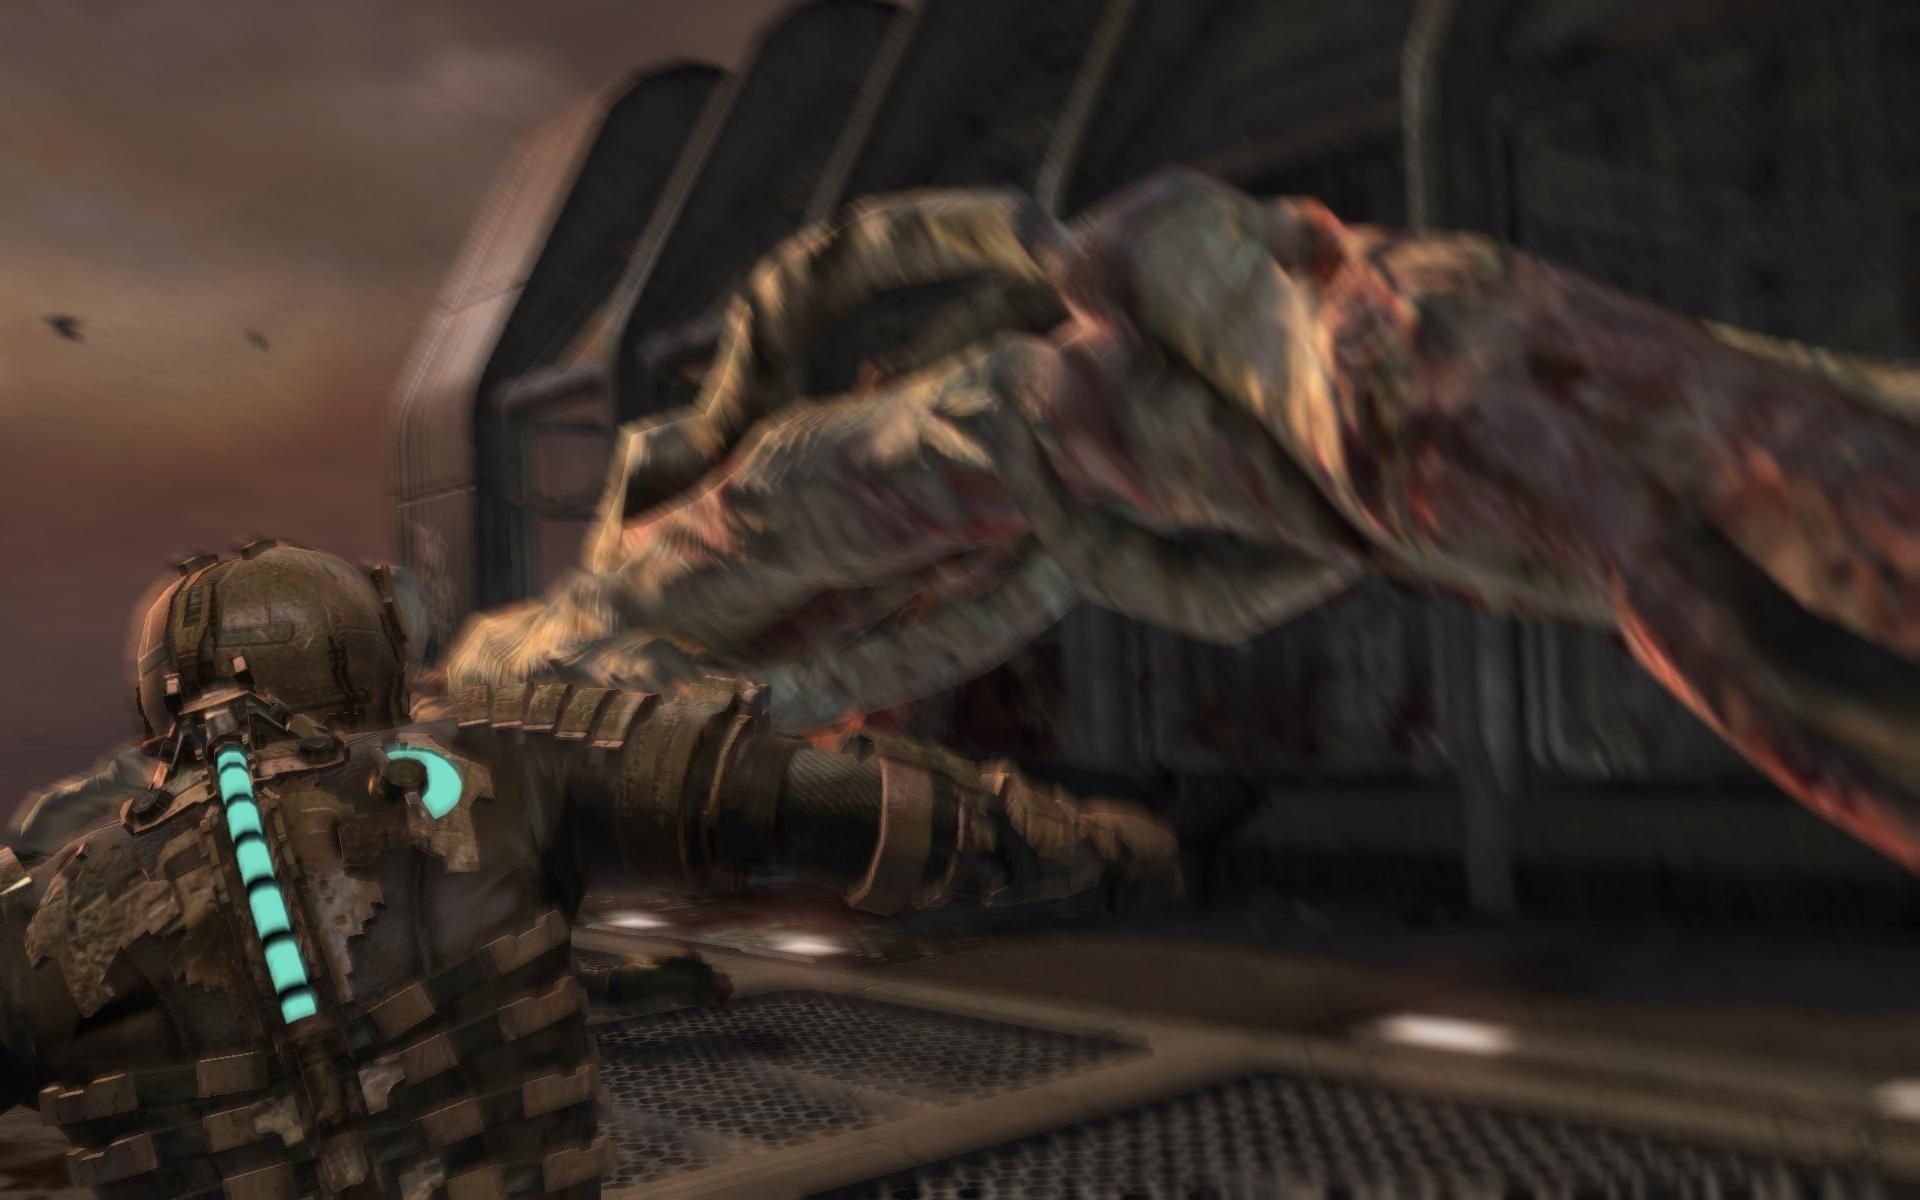 dead-space-2011-01-30-17-45-00-12